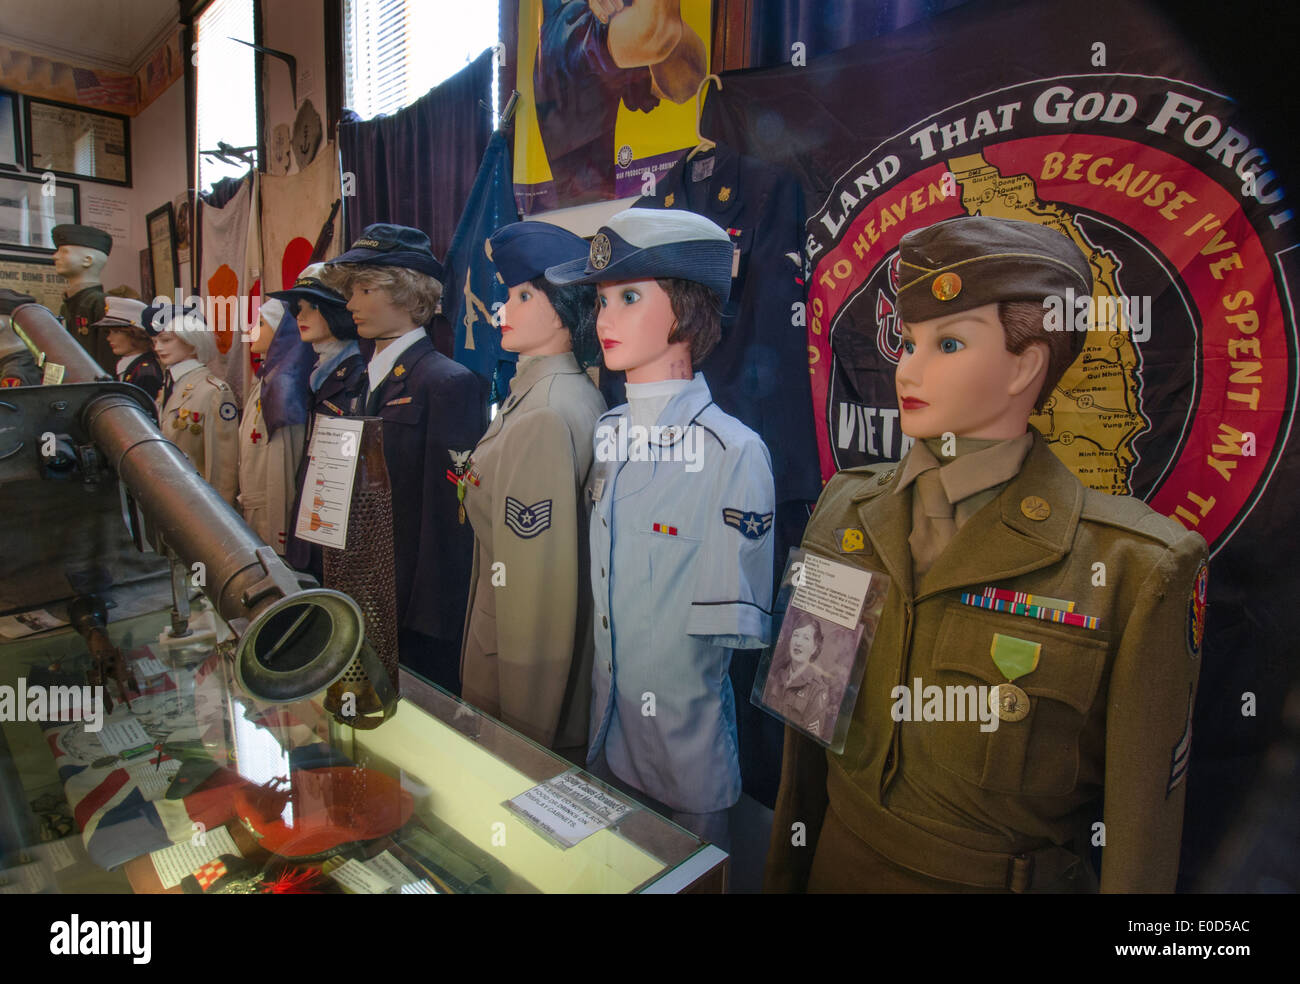 An exhibit of military servicewomen in the Route 66 Hall of Fame and Museum in Pontiac, Illinois - Stock Image